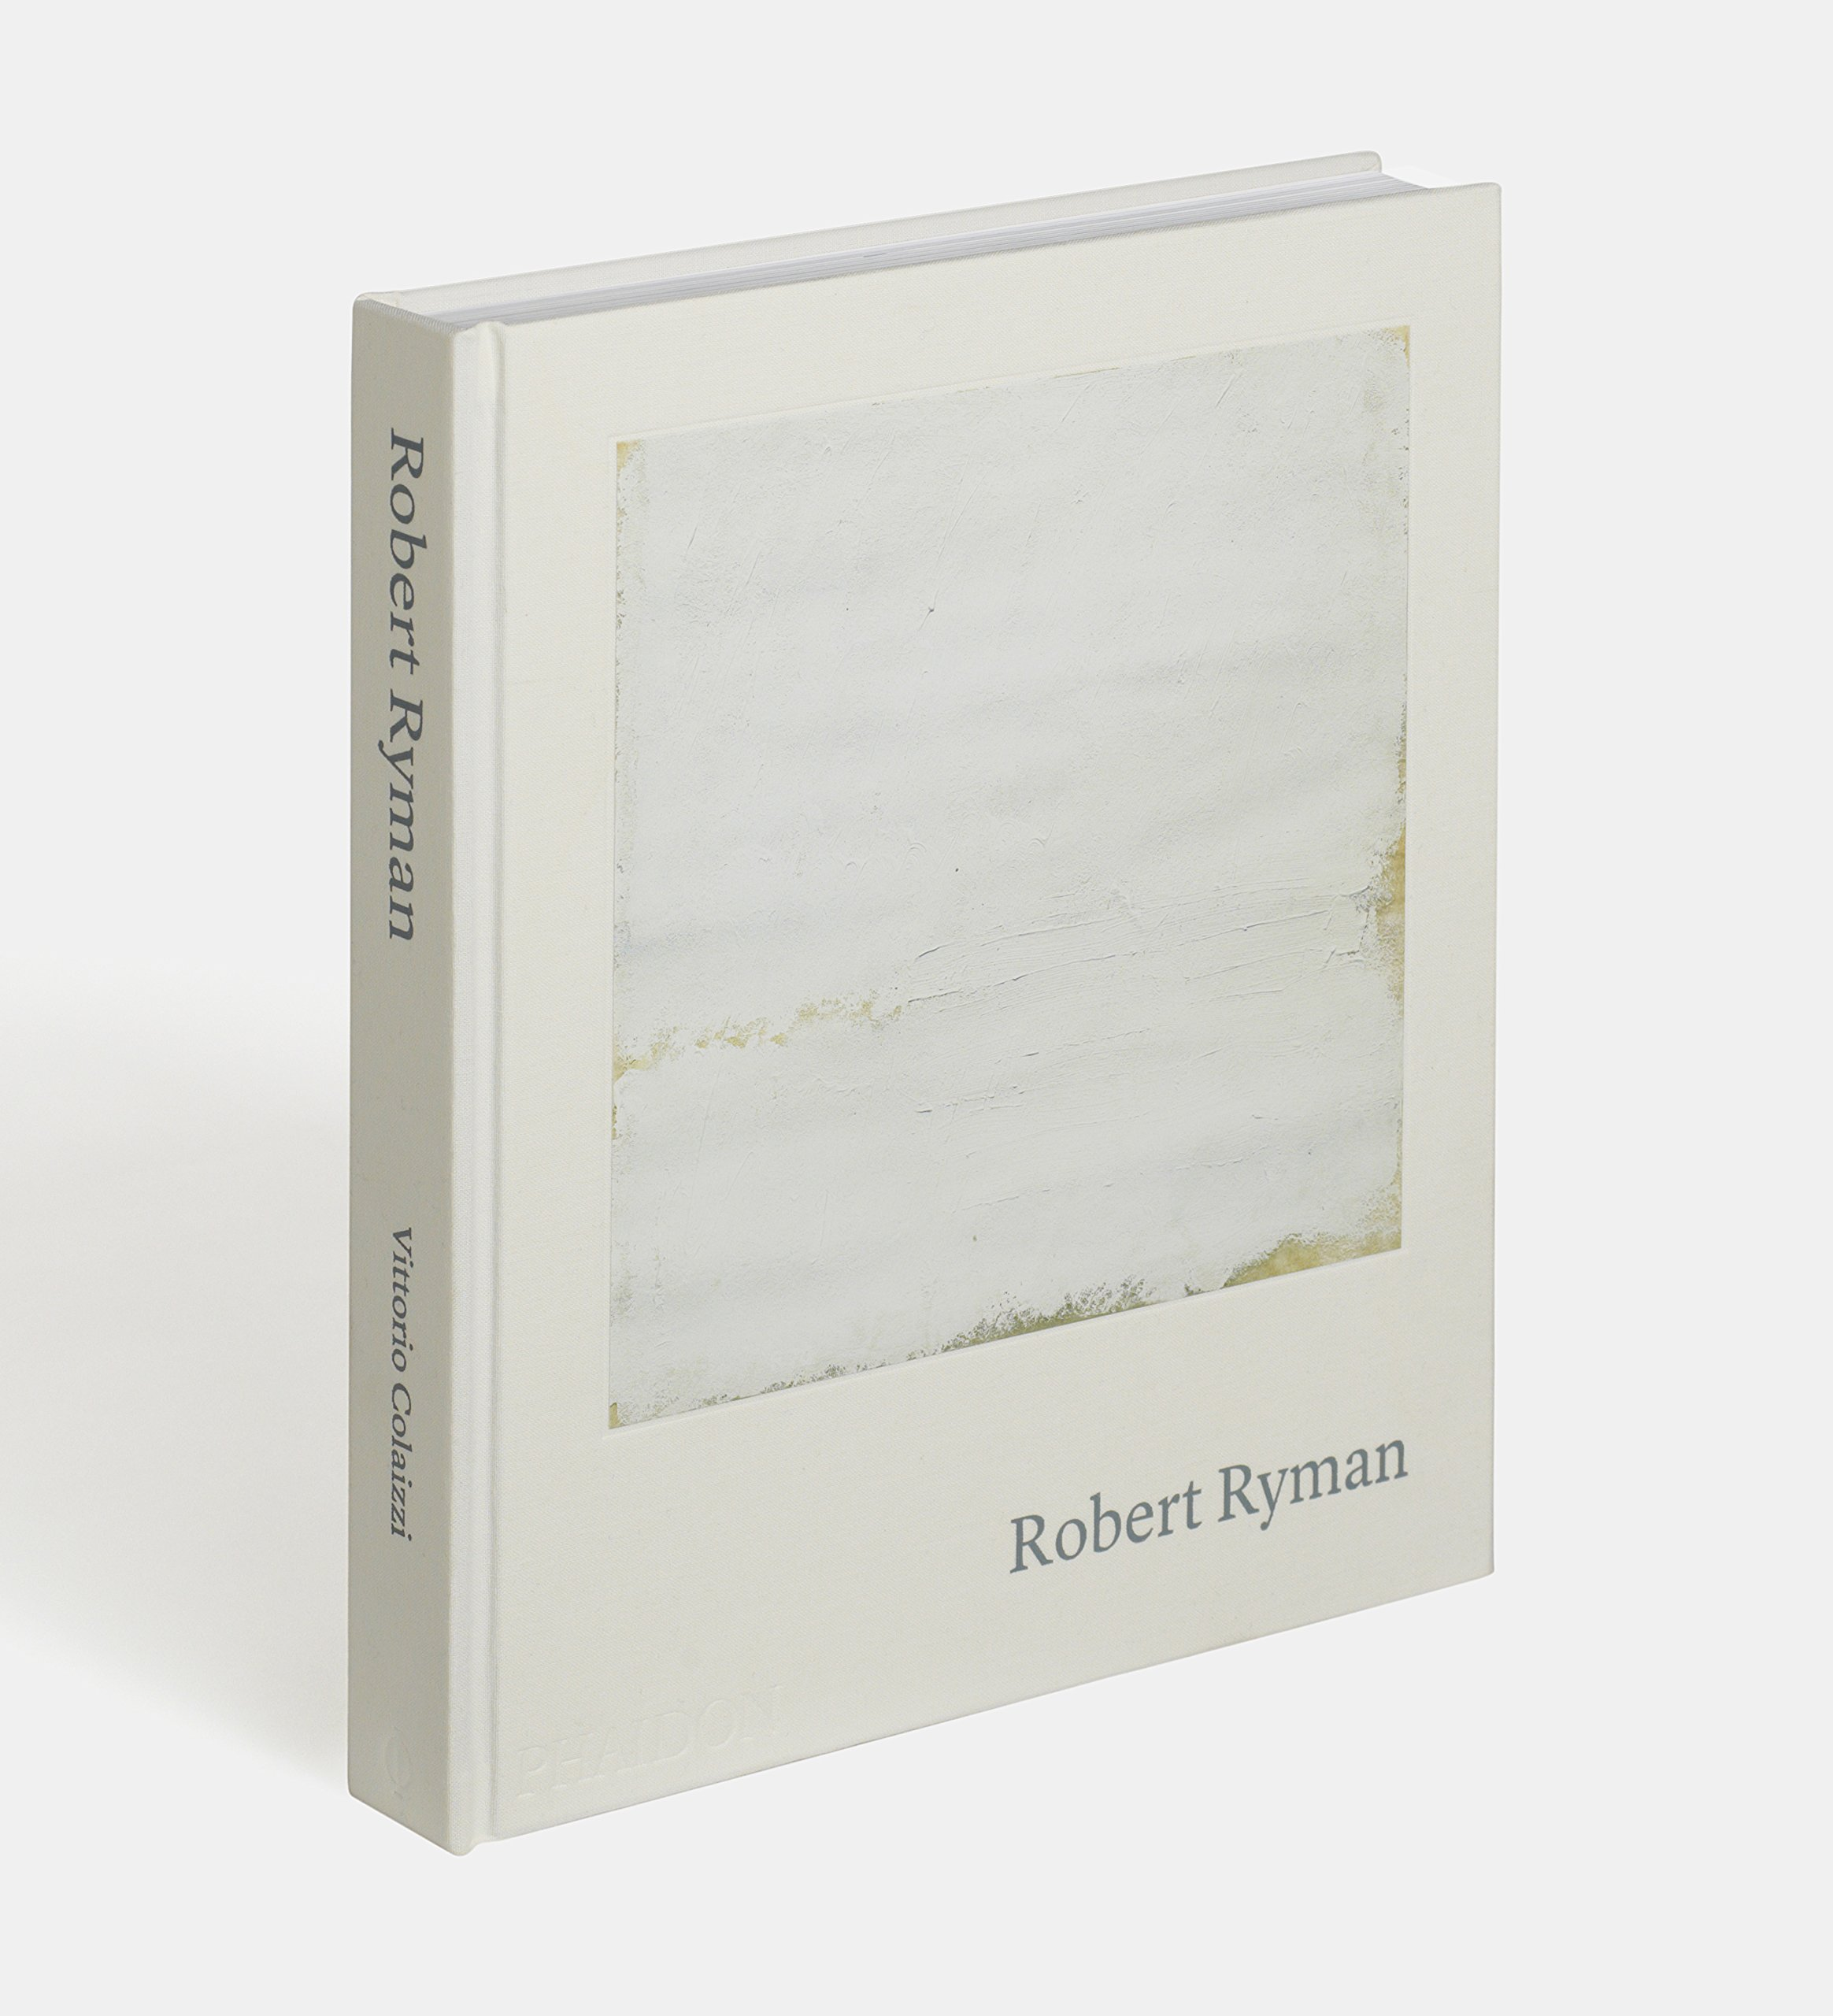 CURRENT Books exhibitor Vittorio Colaizzi will be tabling with his  monograph on Robert Ryman , pictured here.